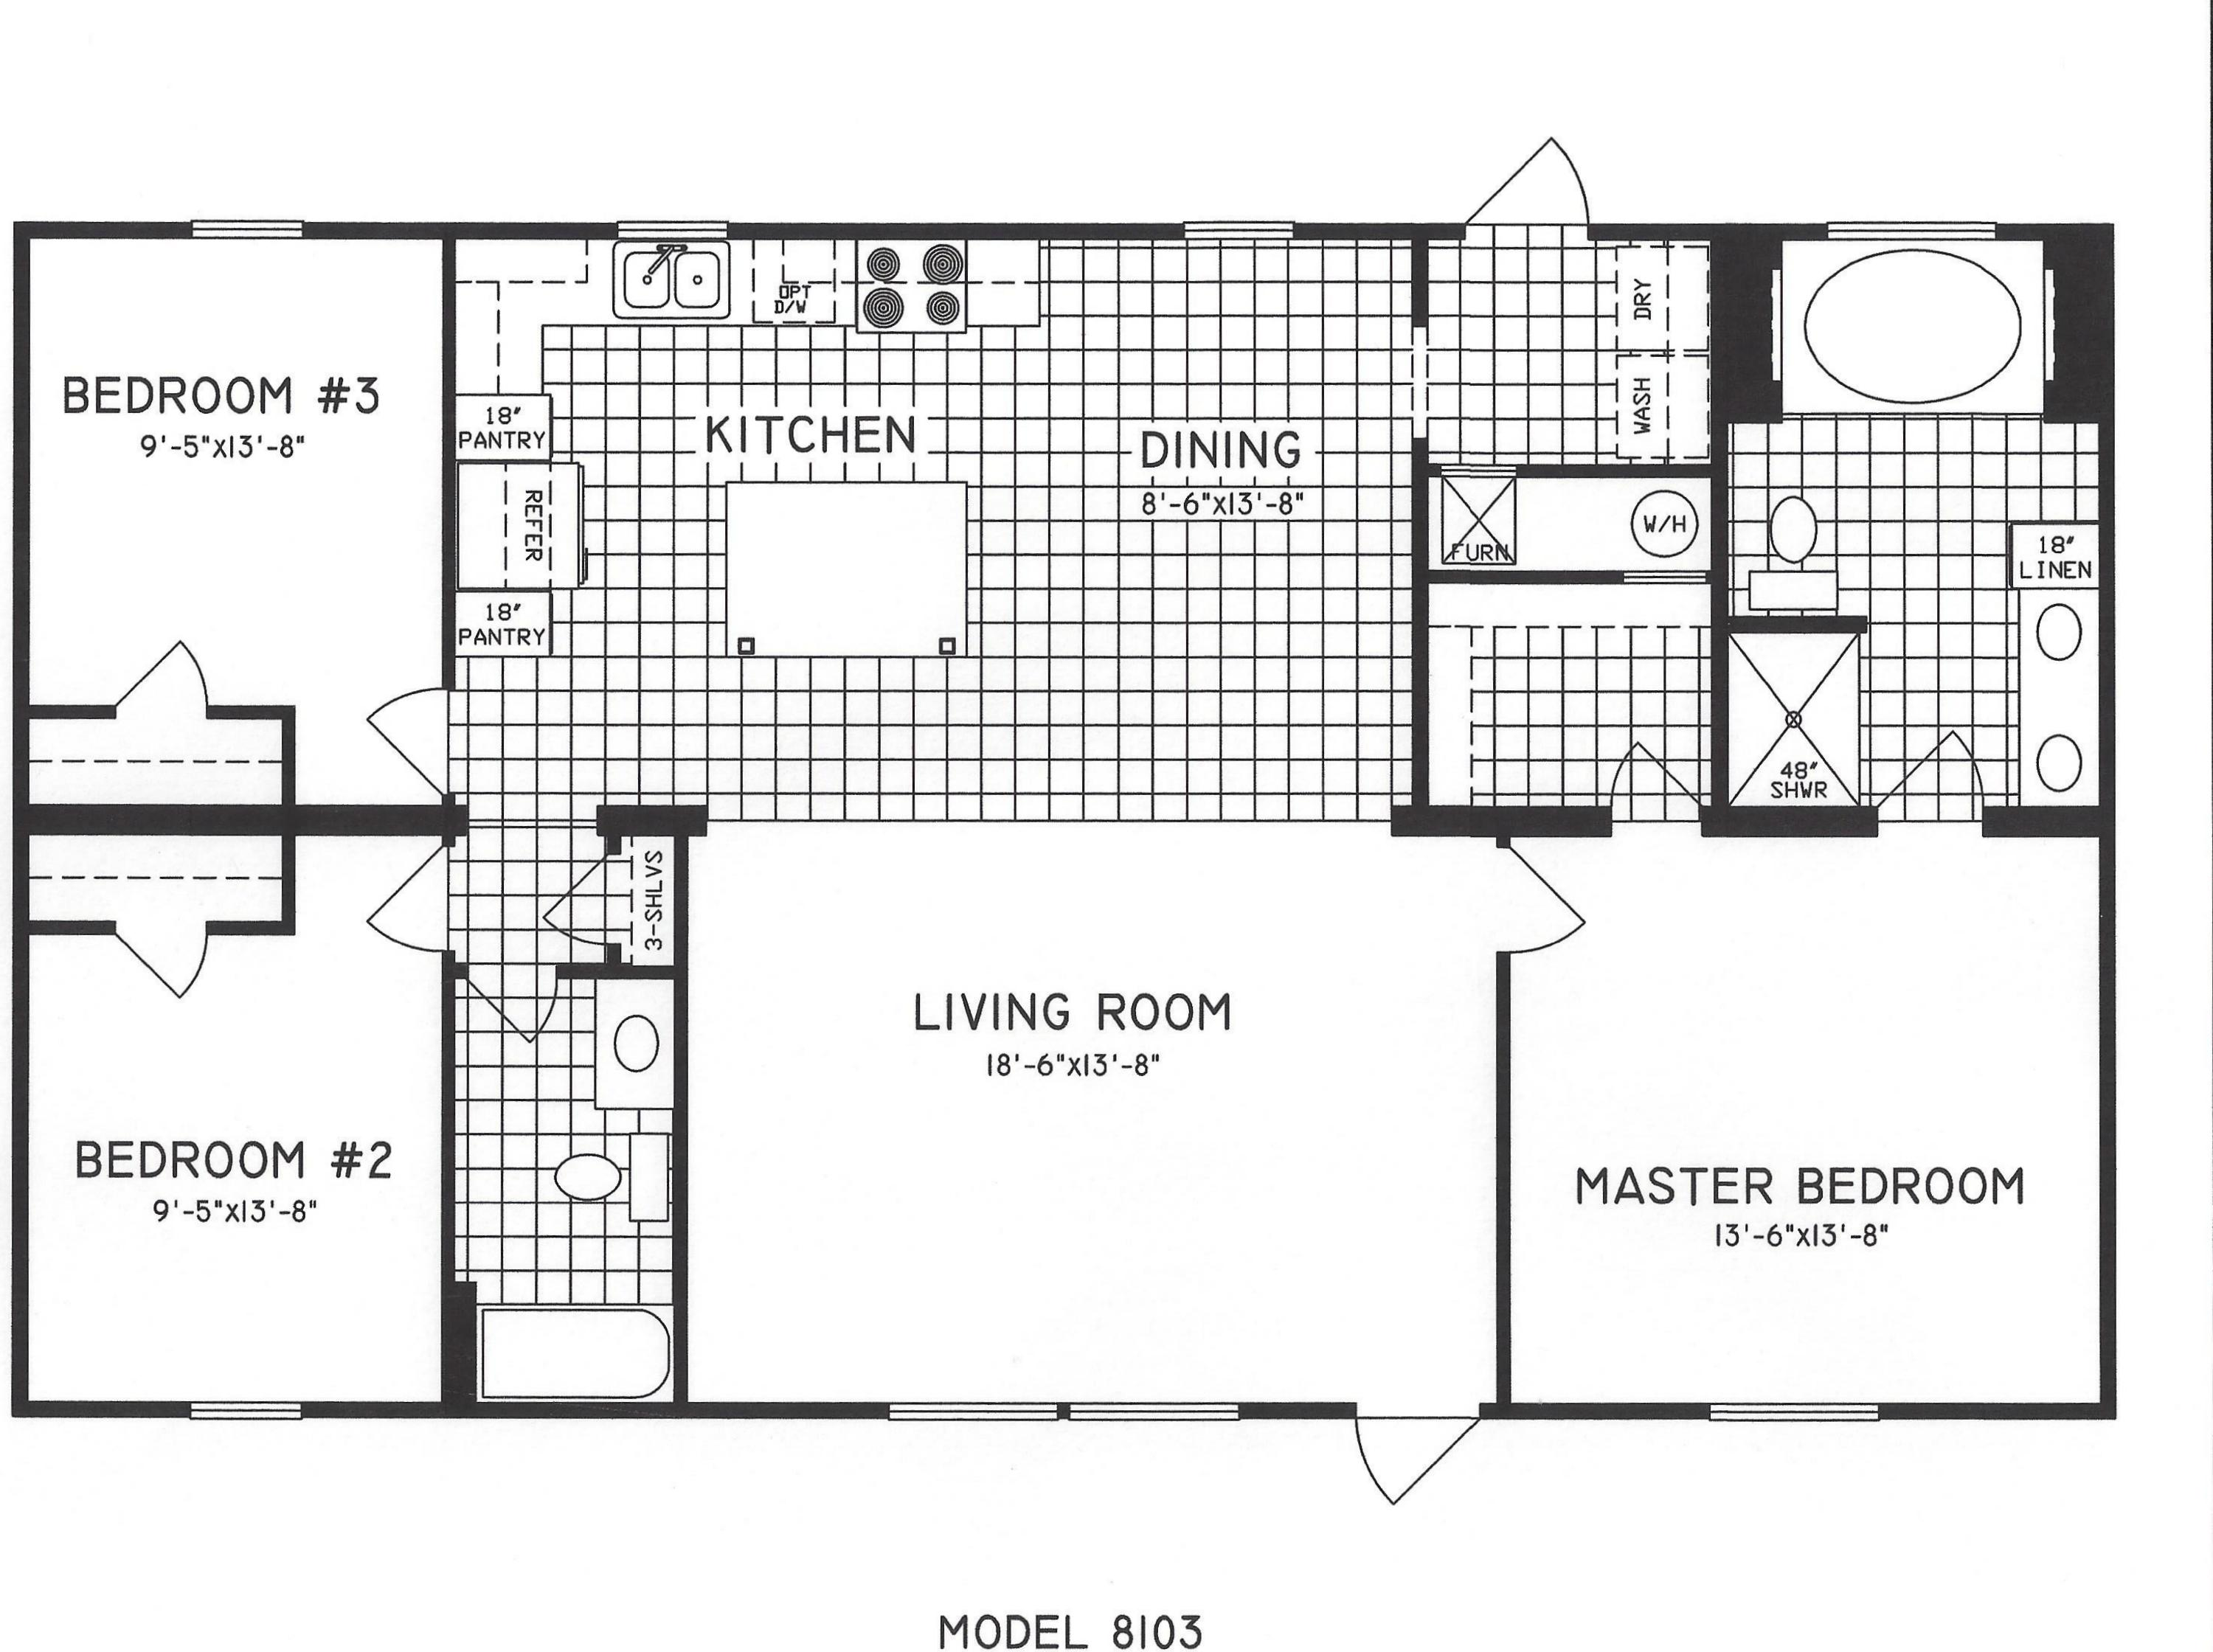 3 bedroom floor plan c 8103 hawks homes manufactured for 4 bedroom 3 bath floor plans